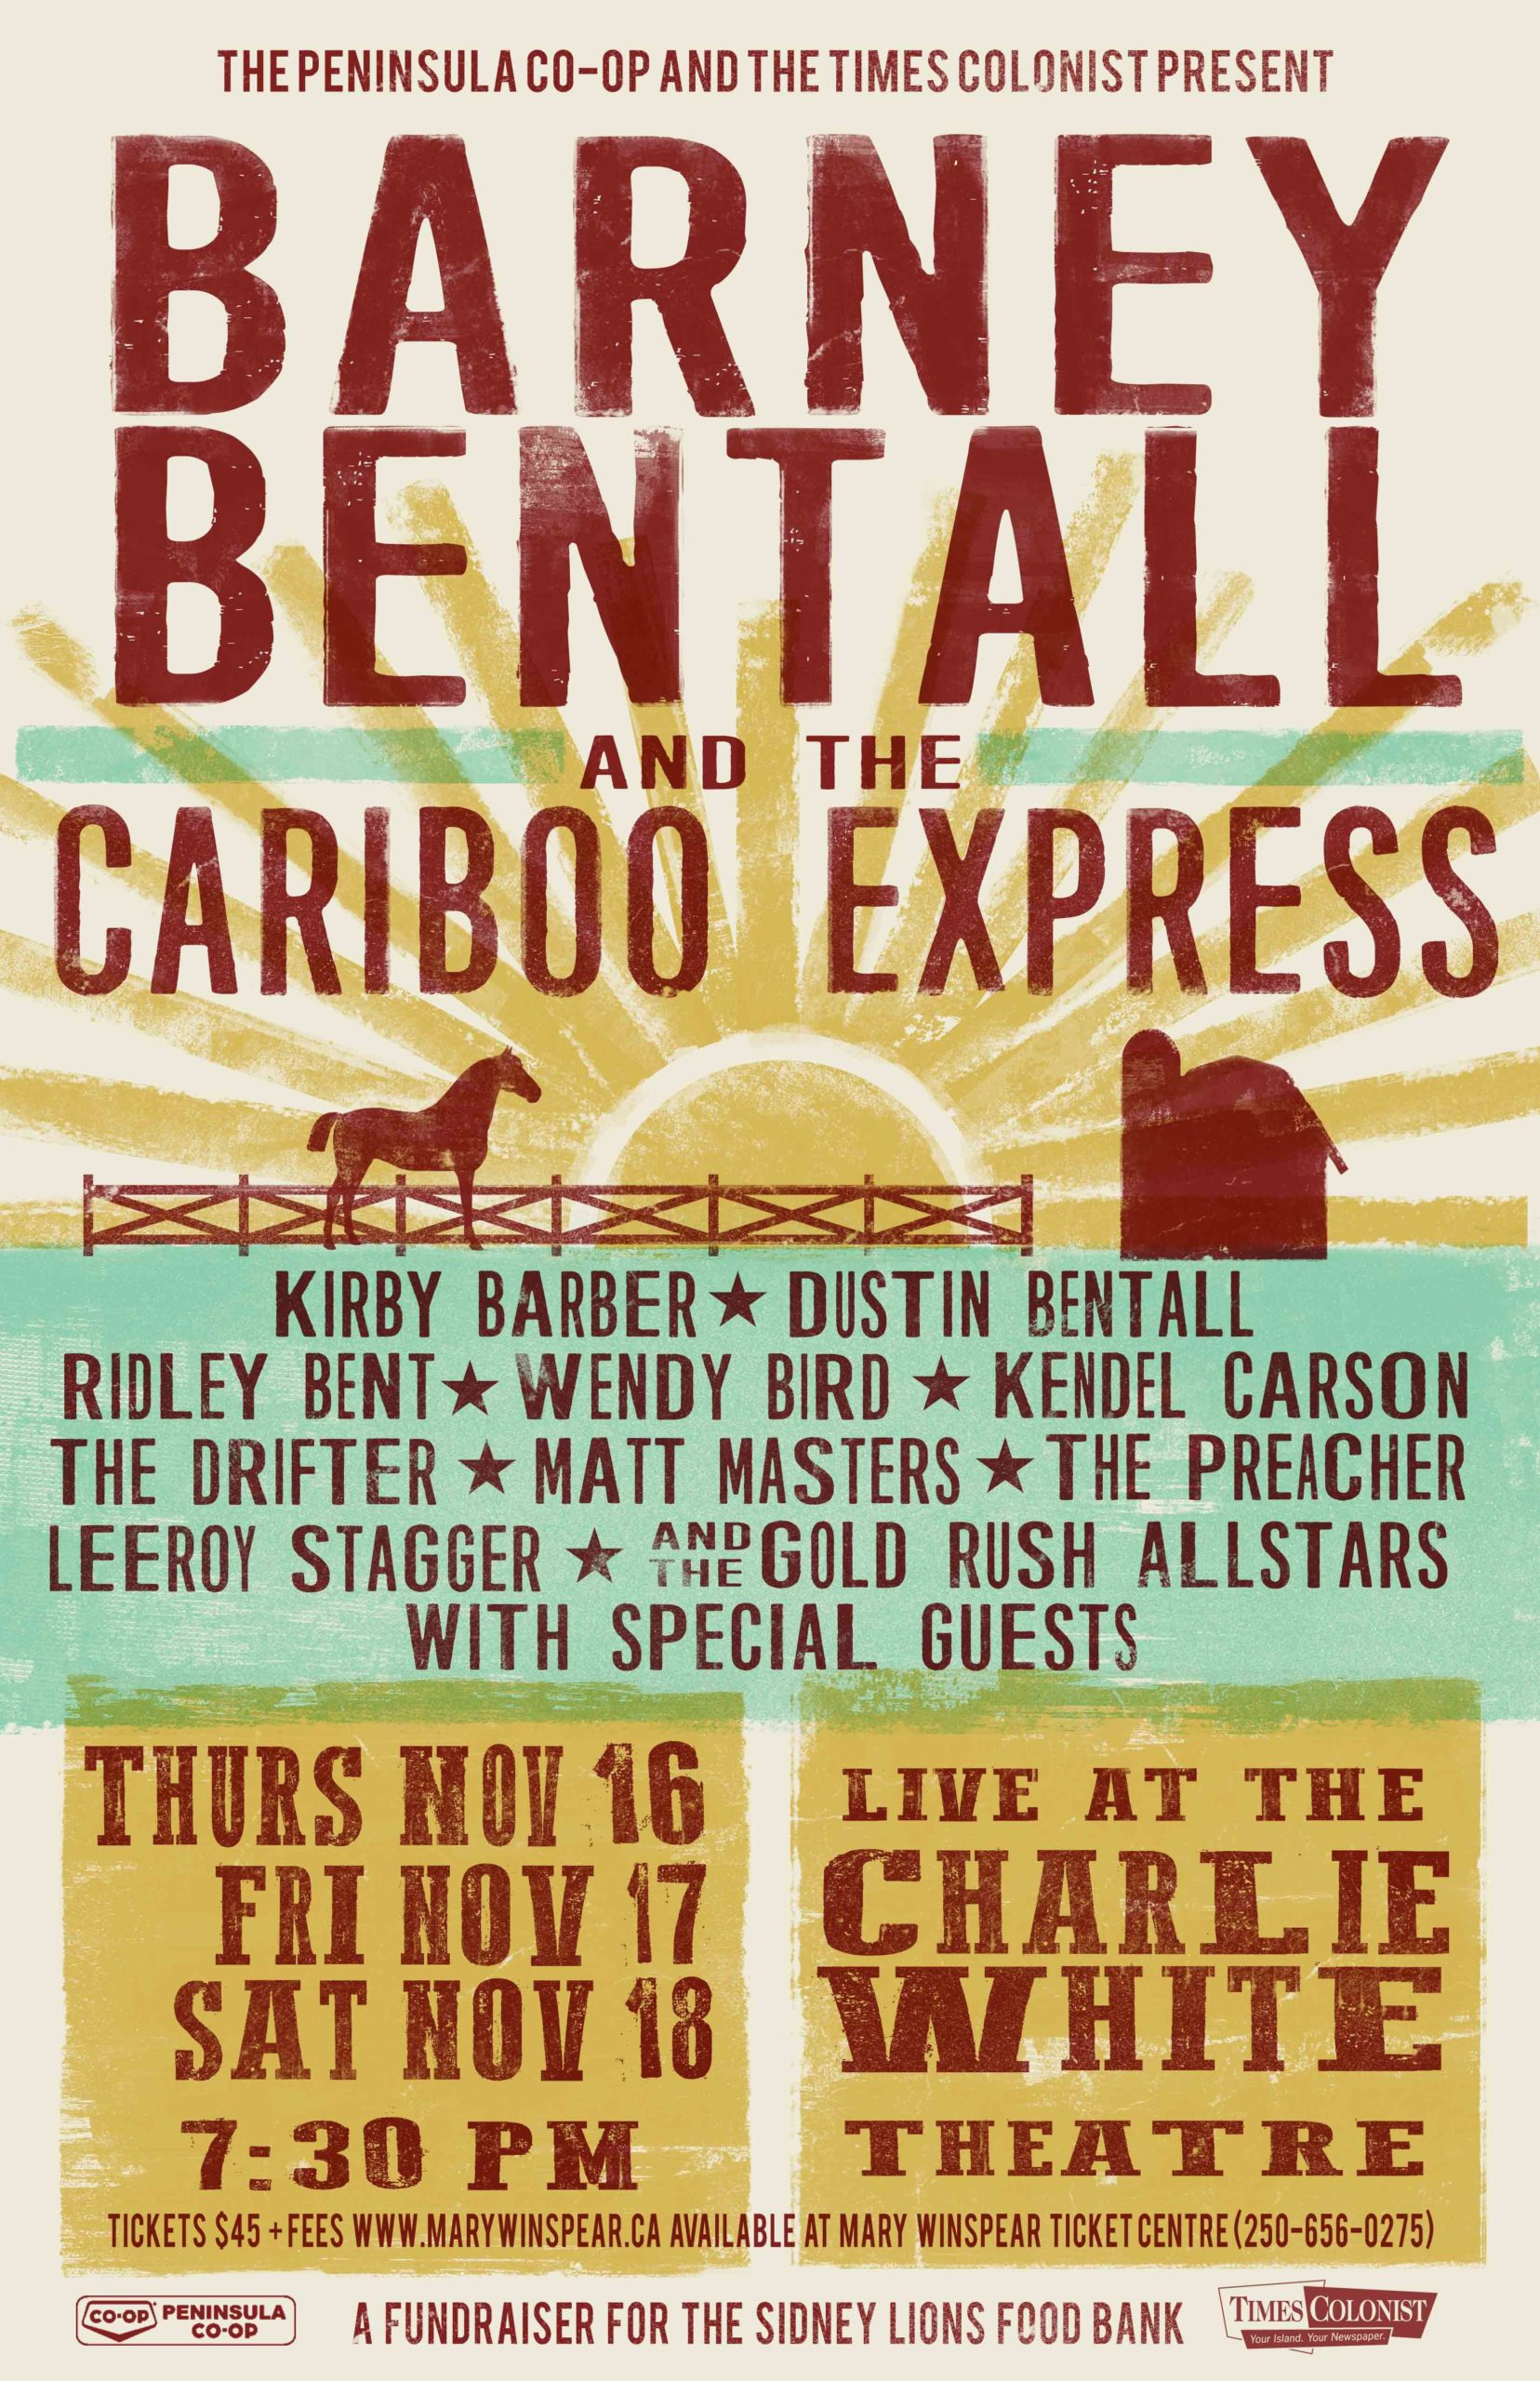 Barney Bentall and the Cariboo Express   The Zone @ 91-3